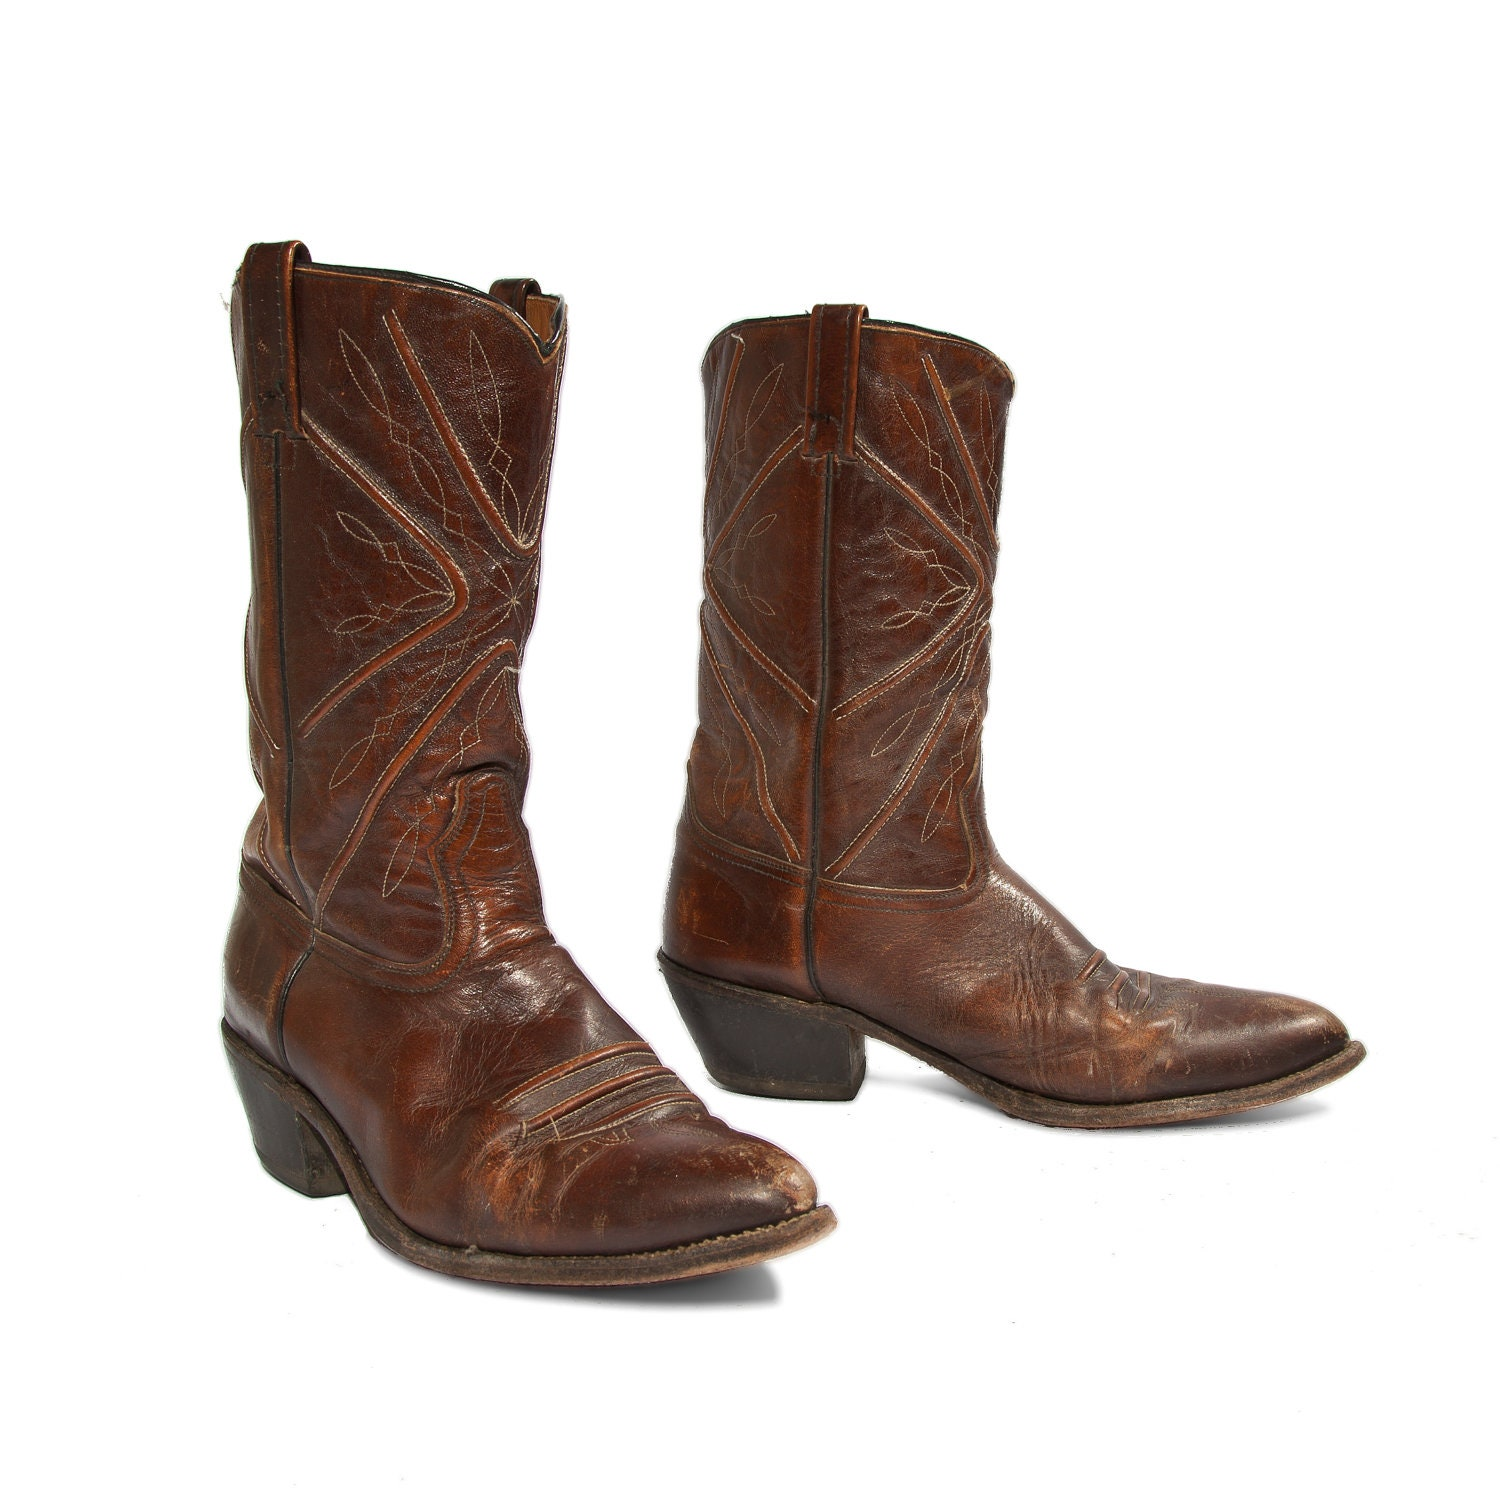 mens cowboy boots fall fashion brown leather by nashdrygoods